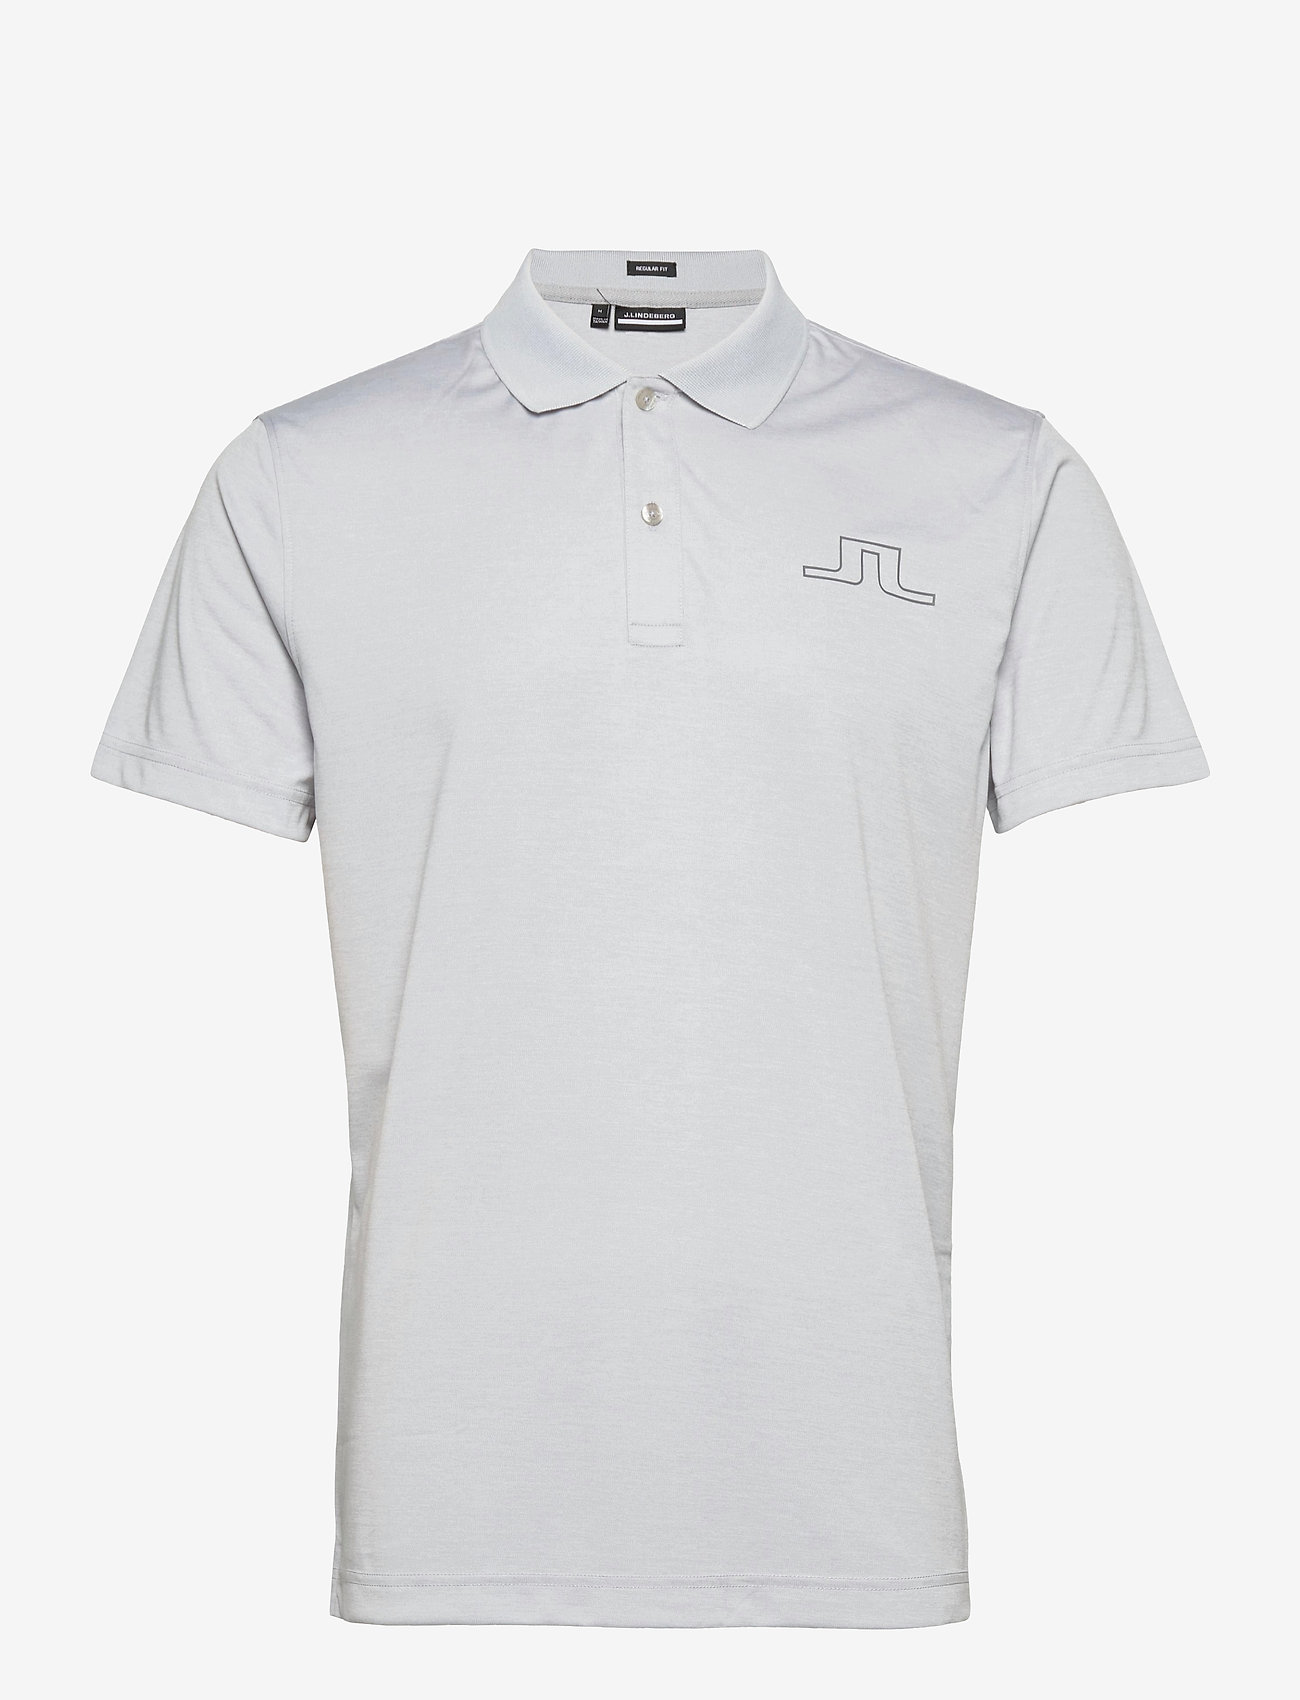 J. Lindeberg Golf - Bridge Regular Fit Golf Polo - kurzärmelig - stone grey melange - 1